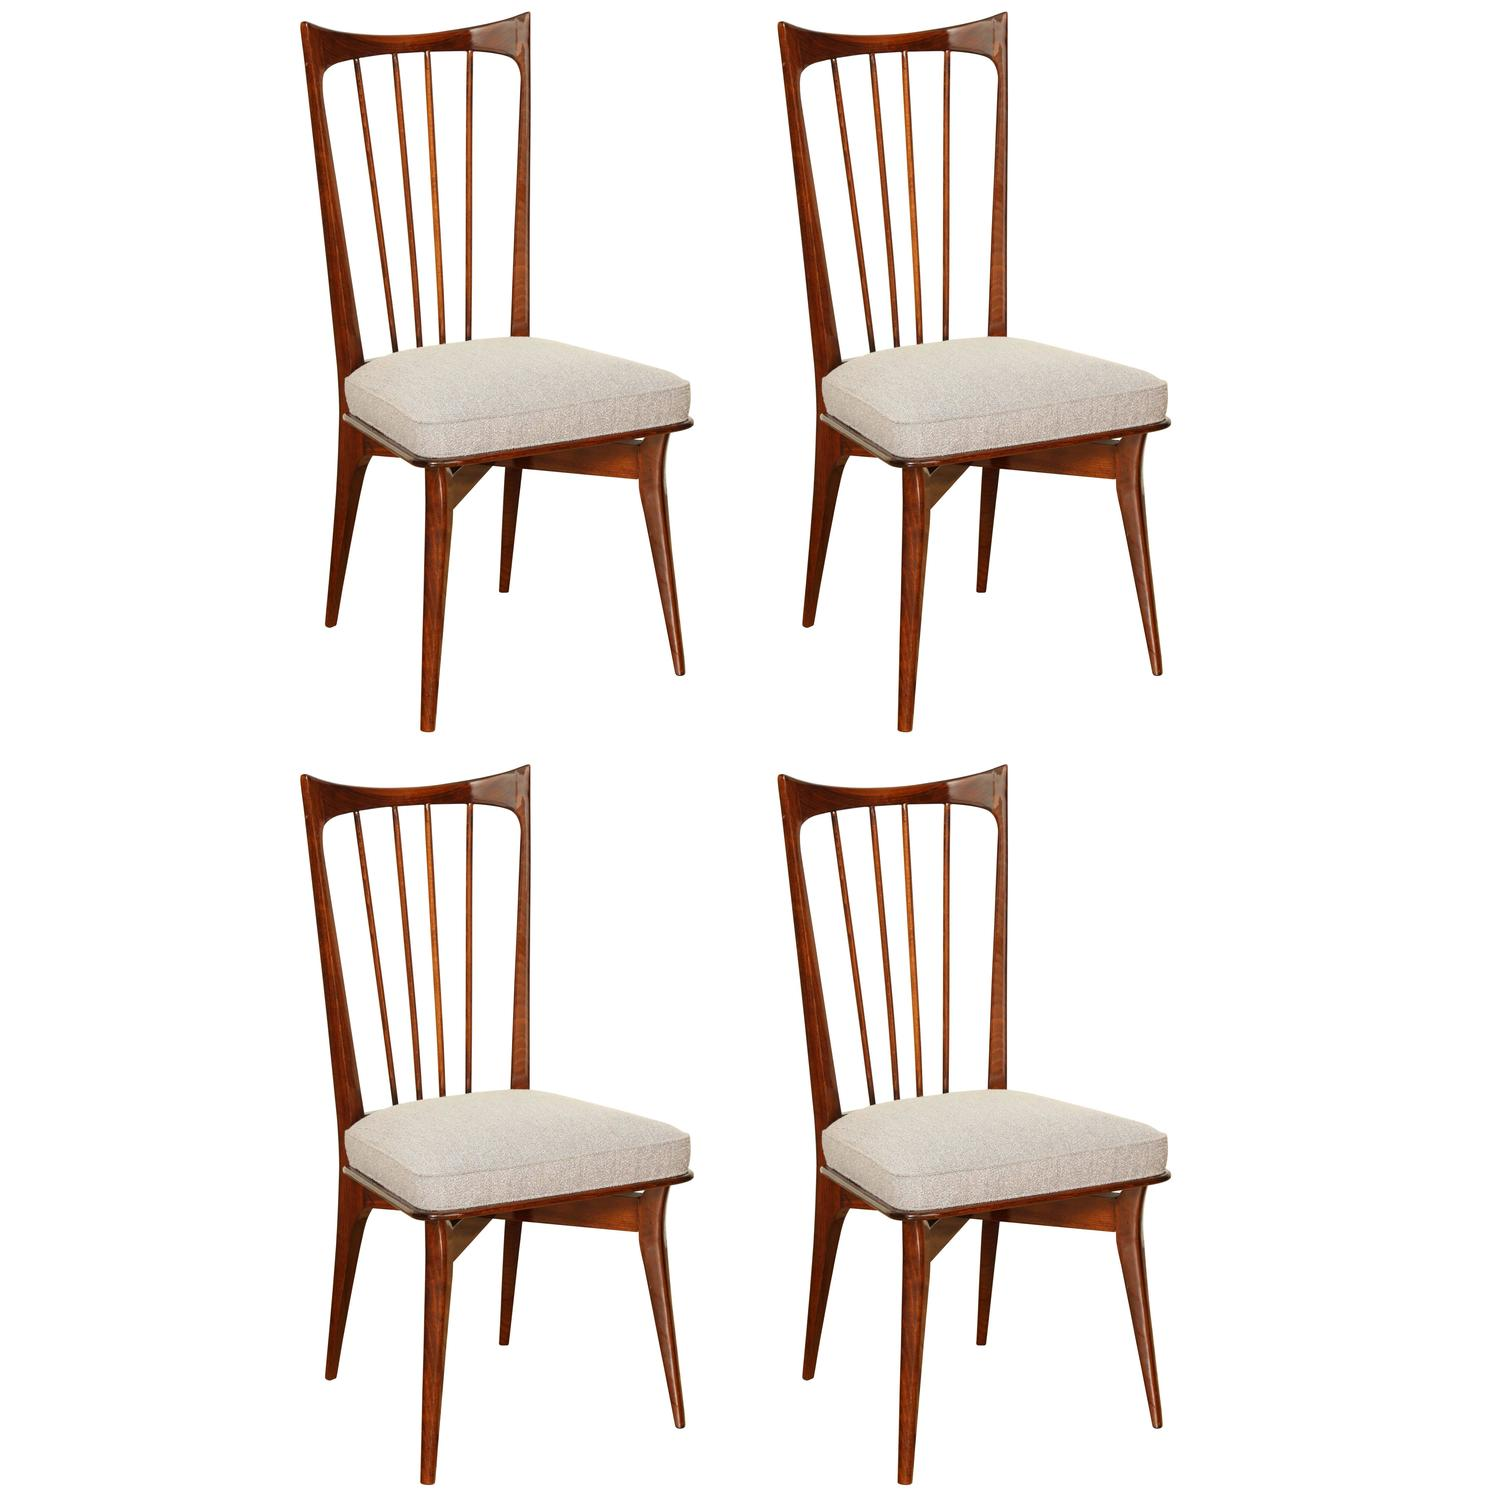 mid century modern dining chairs for sale at 1stdibs